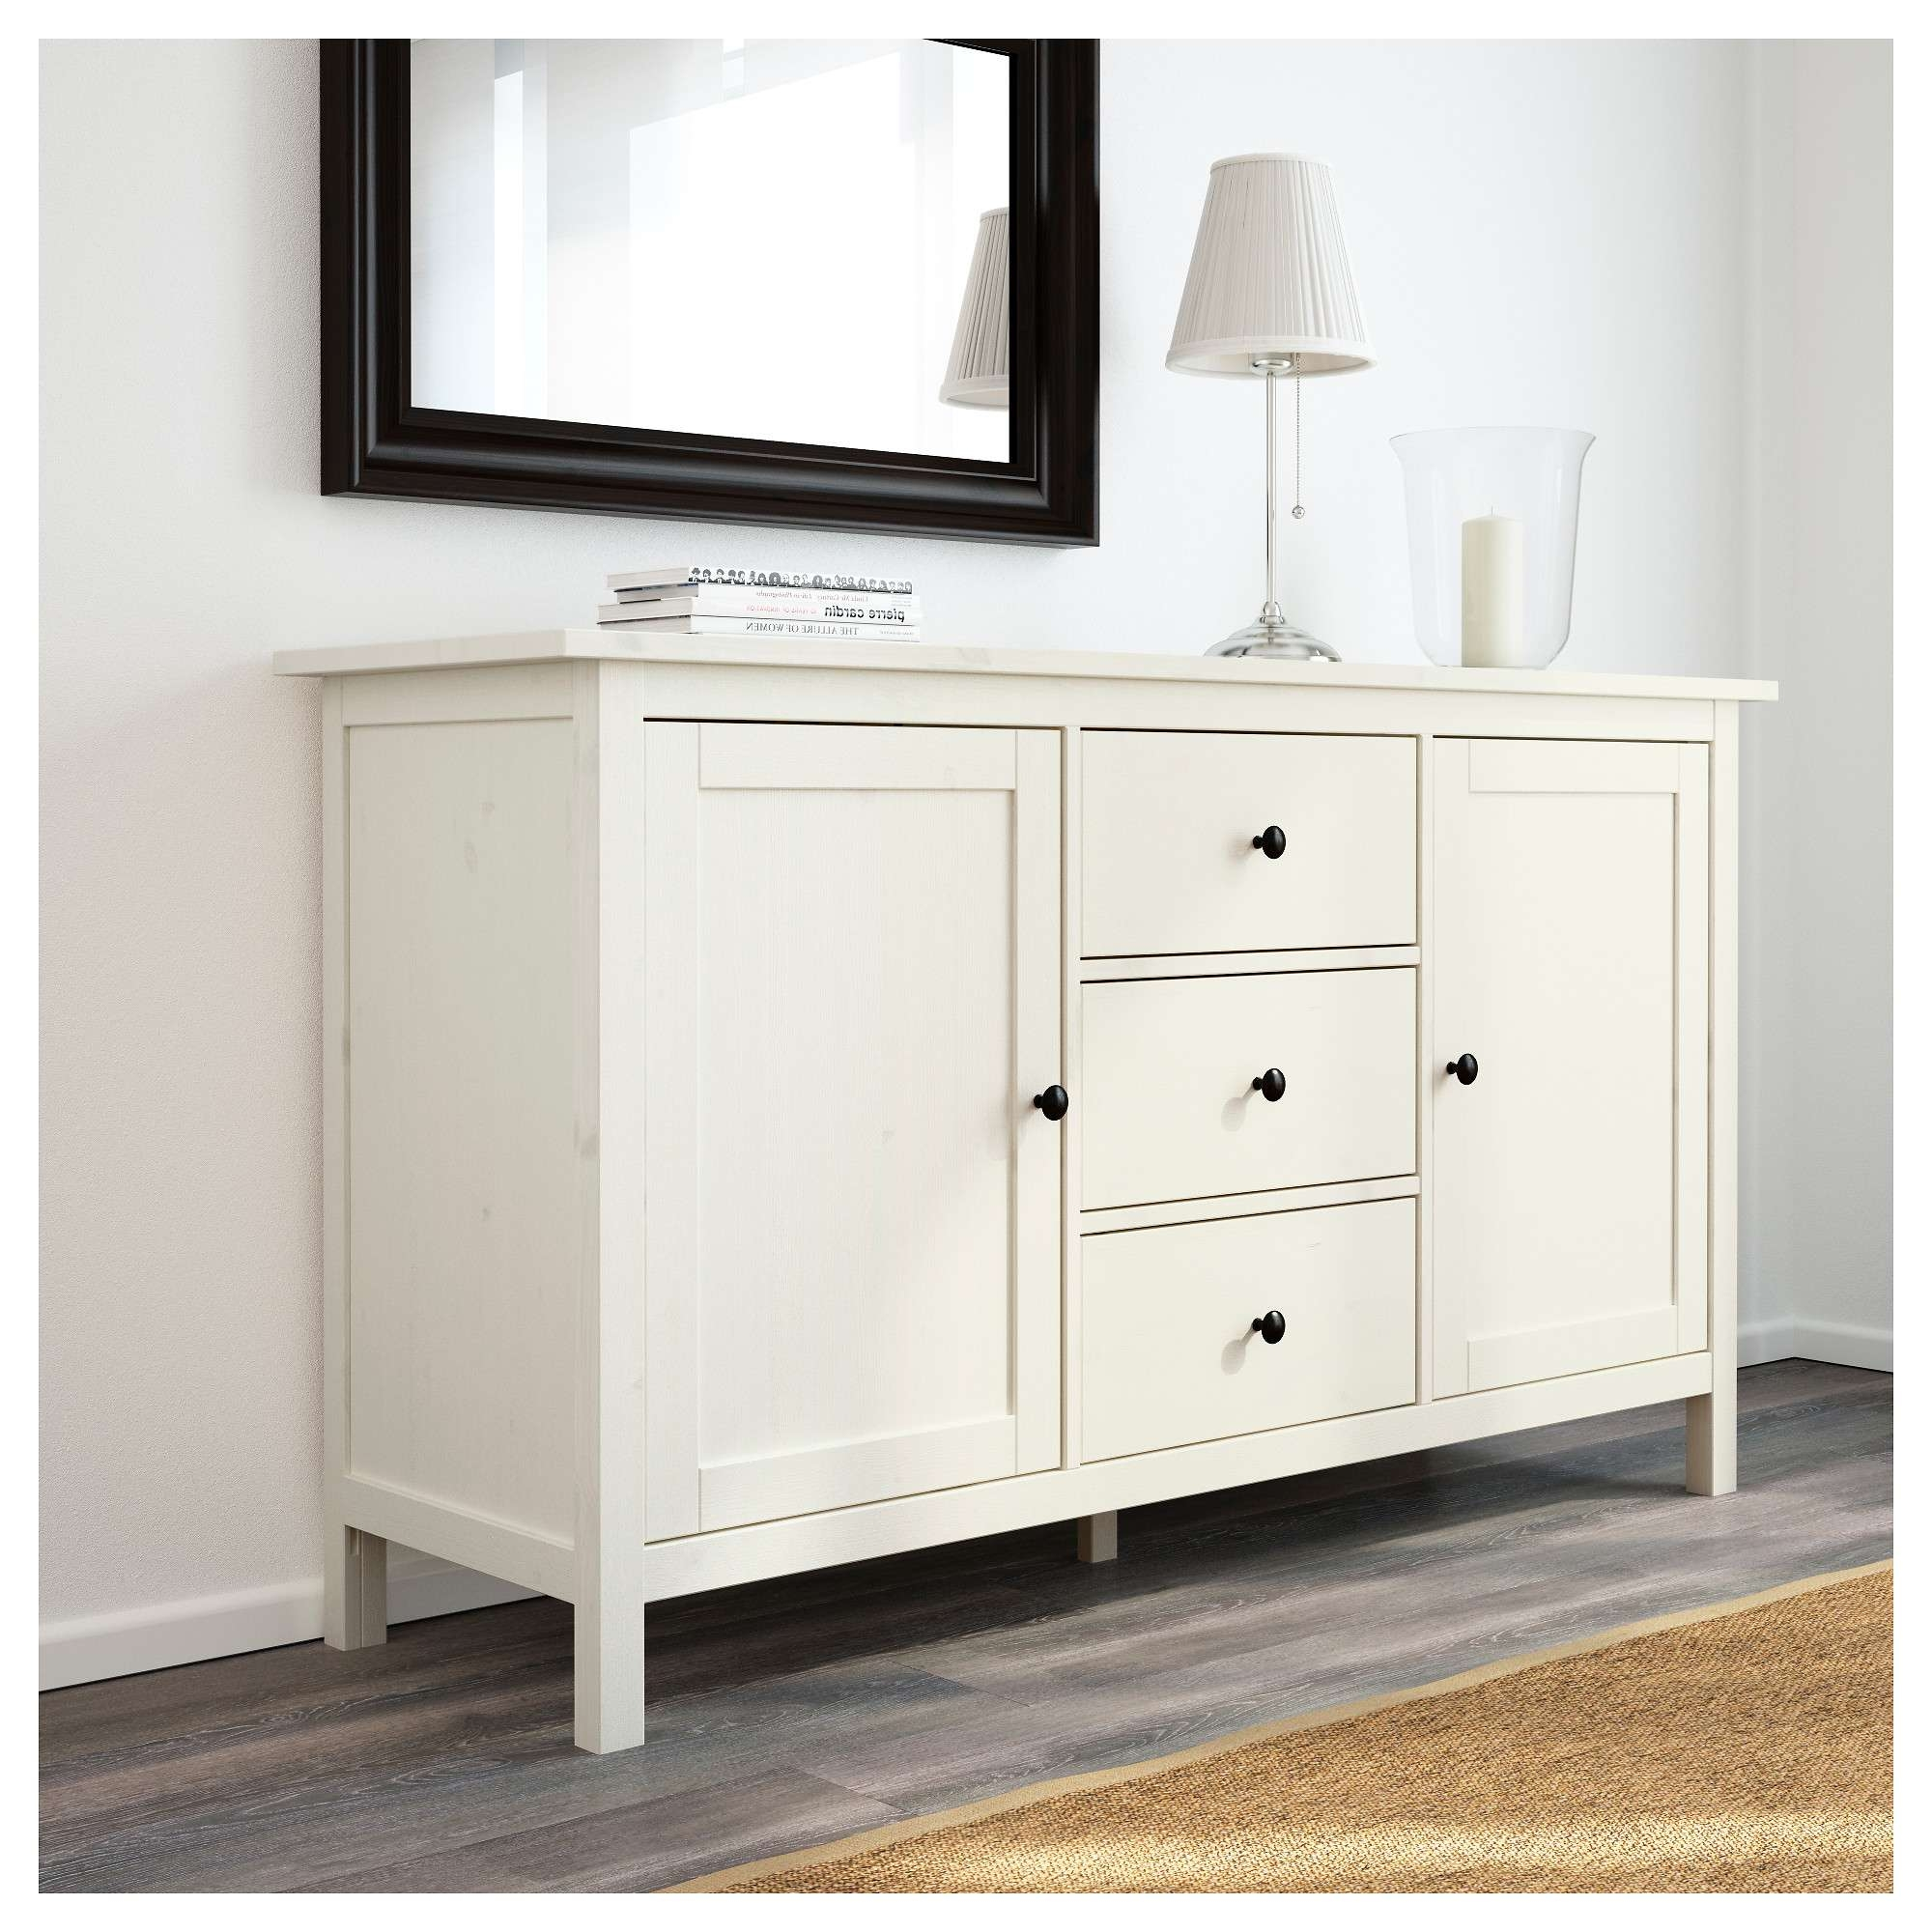 Hemnes Sideboard White Stain 157x88 Cm – Ikea Pertaining To White Wood Sideboards (View 12 of 20)